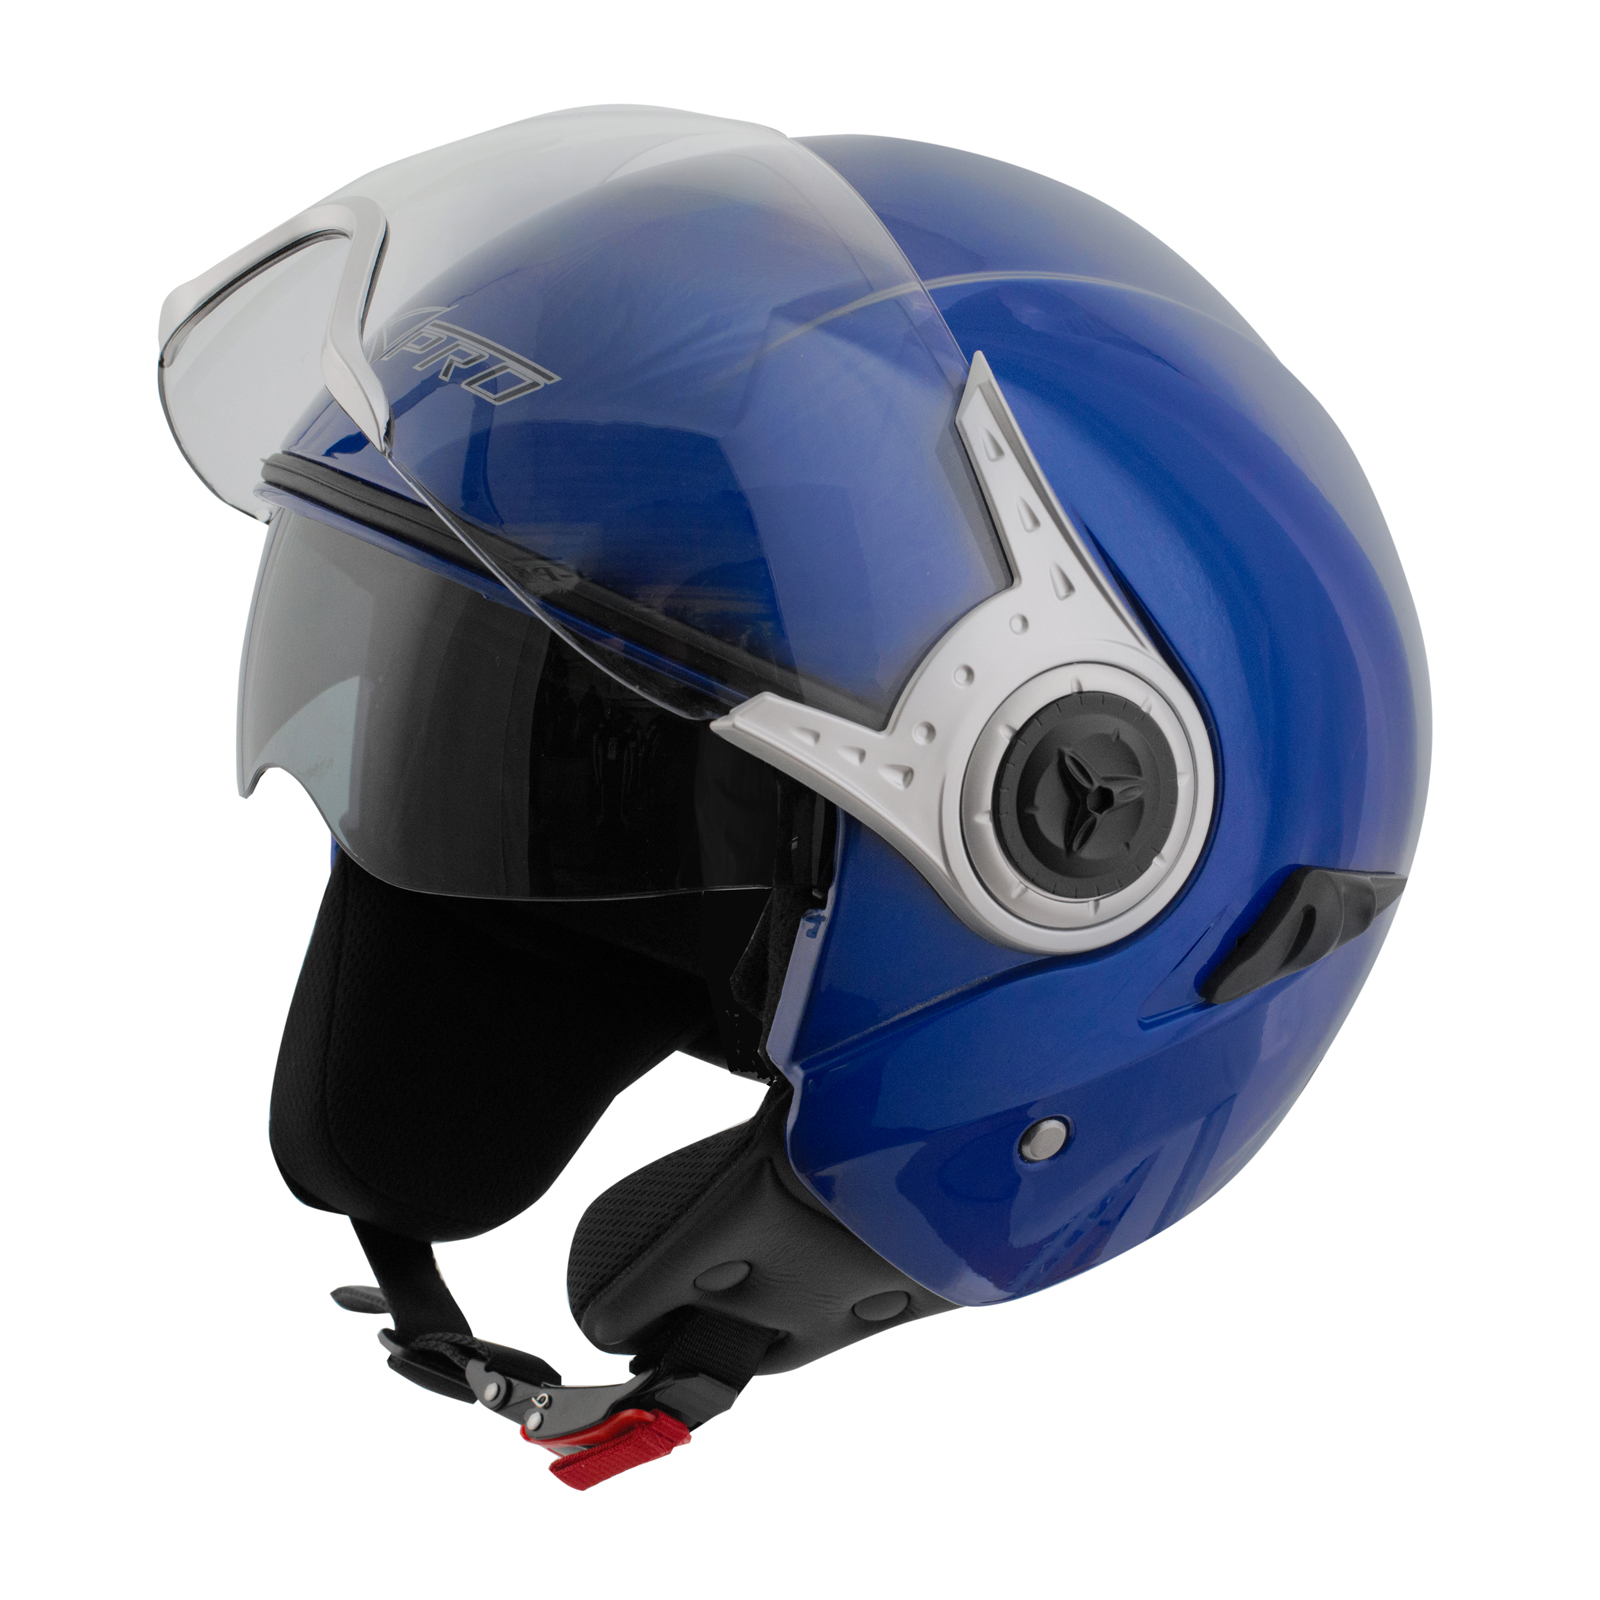 Demi-Jet-Casque-Homologue-Moto-Scooter-Visiere-Pare-Soleil-Blue